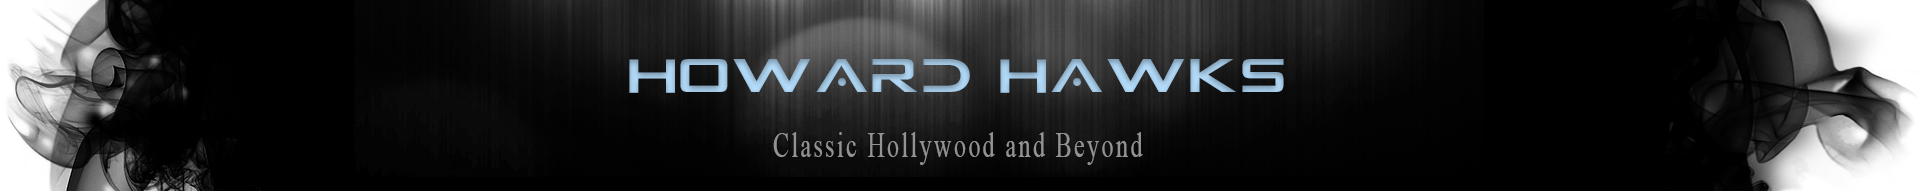 Howard Hawks Logo